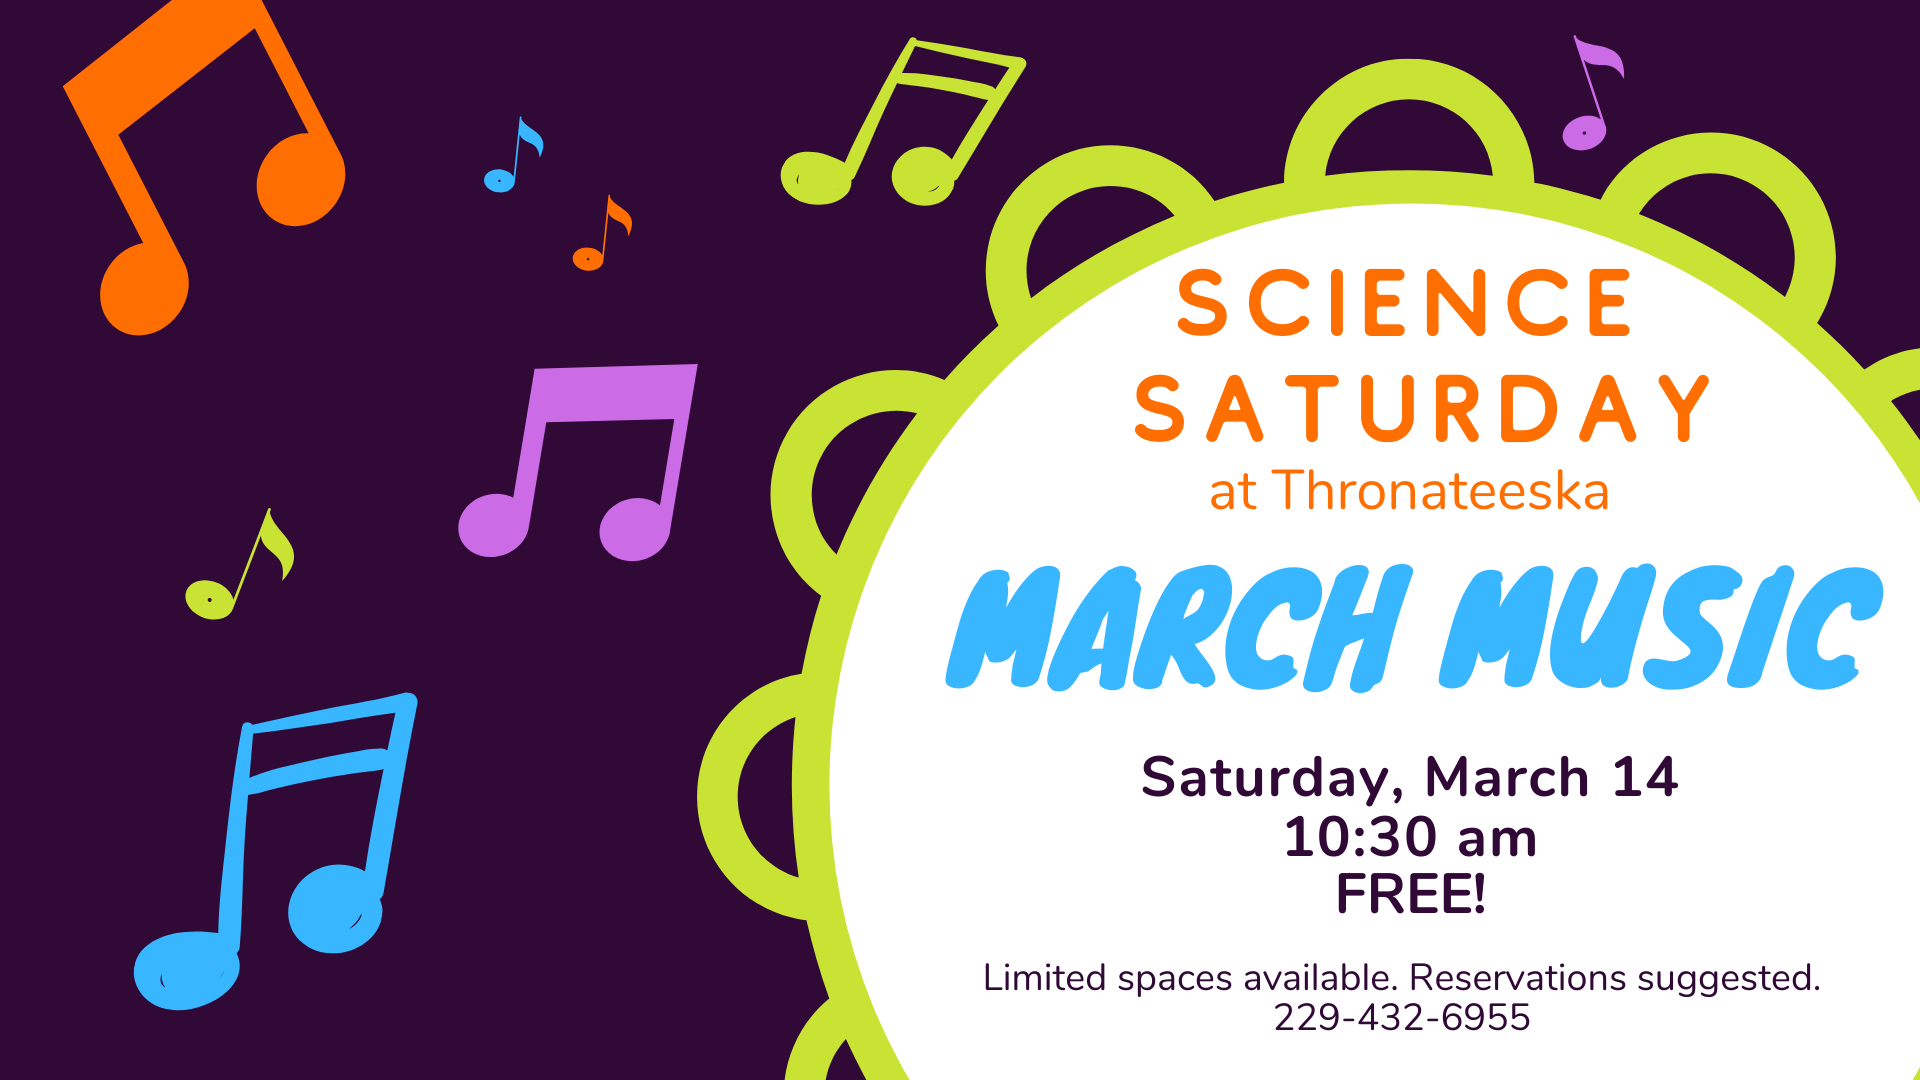 Science Saturday: March Music